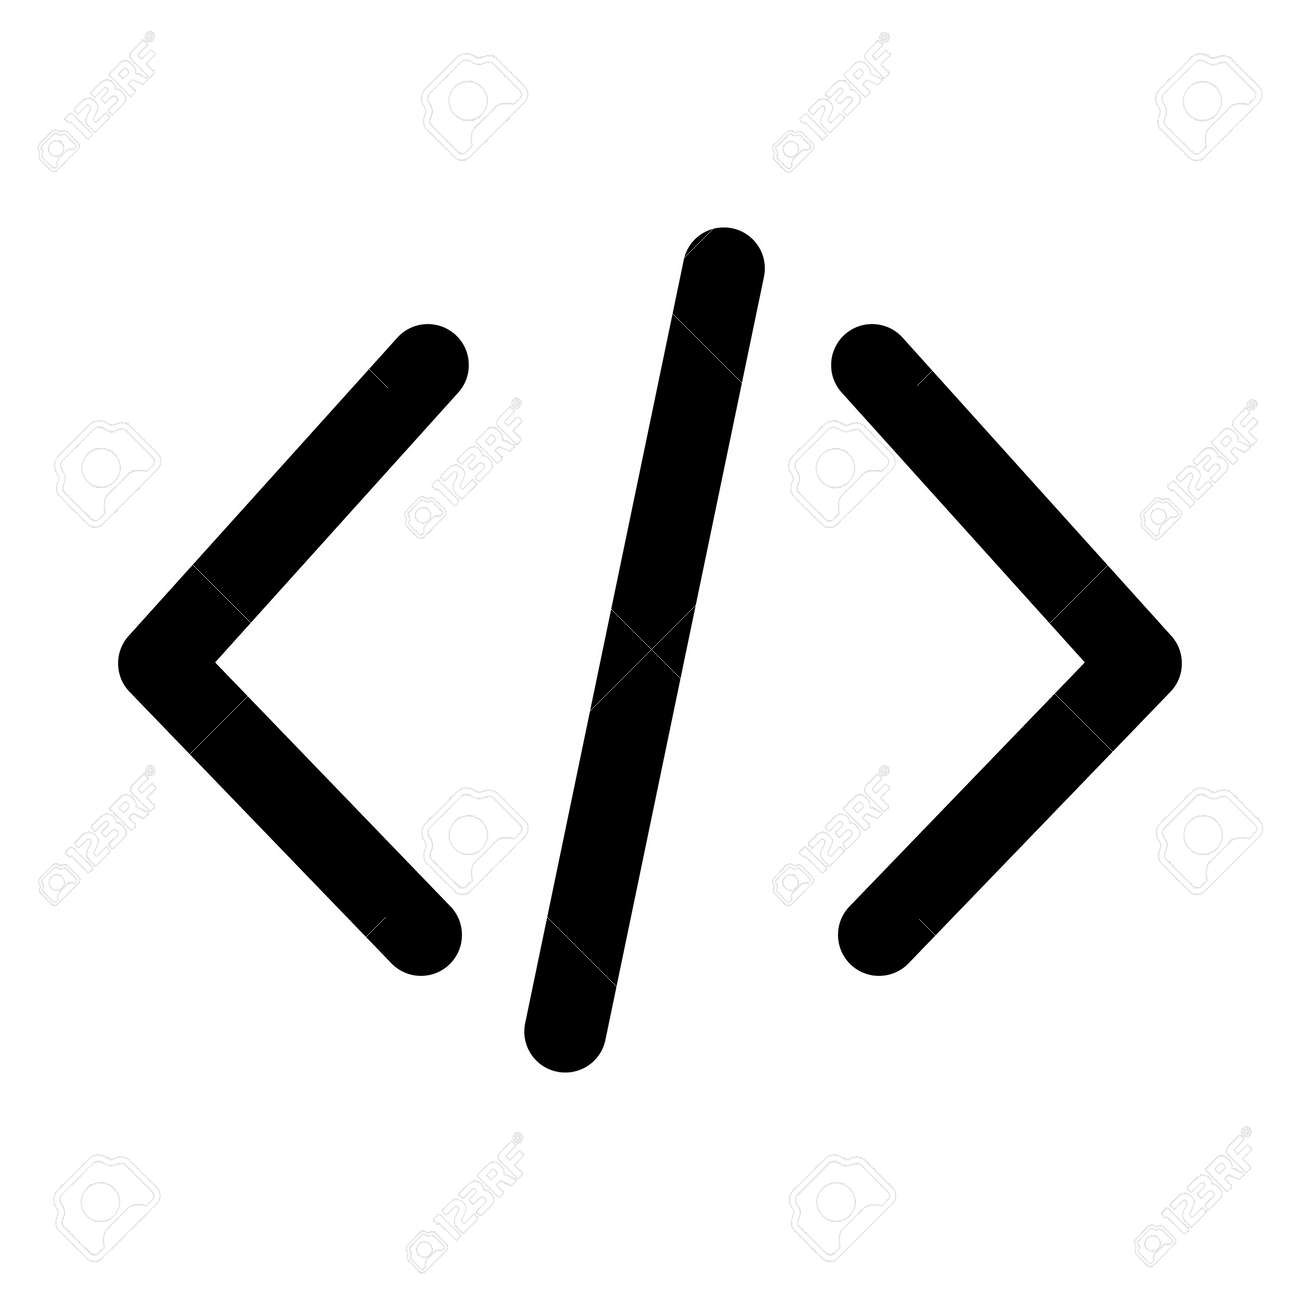 Html coding Bold outline Vector icon which can easily modify or edit - 151390467